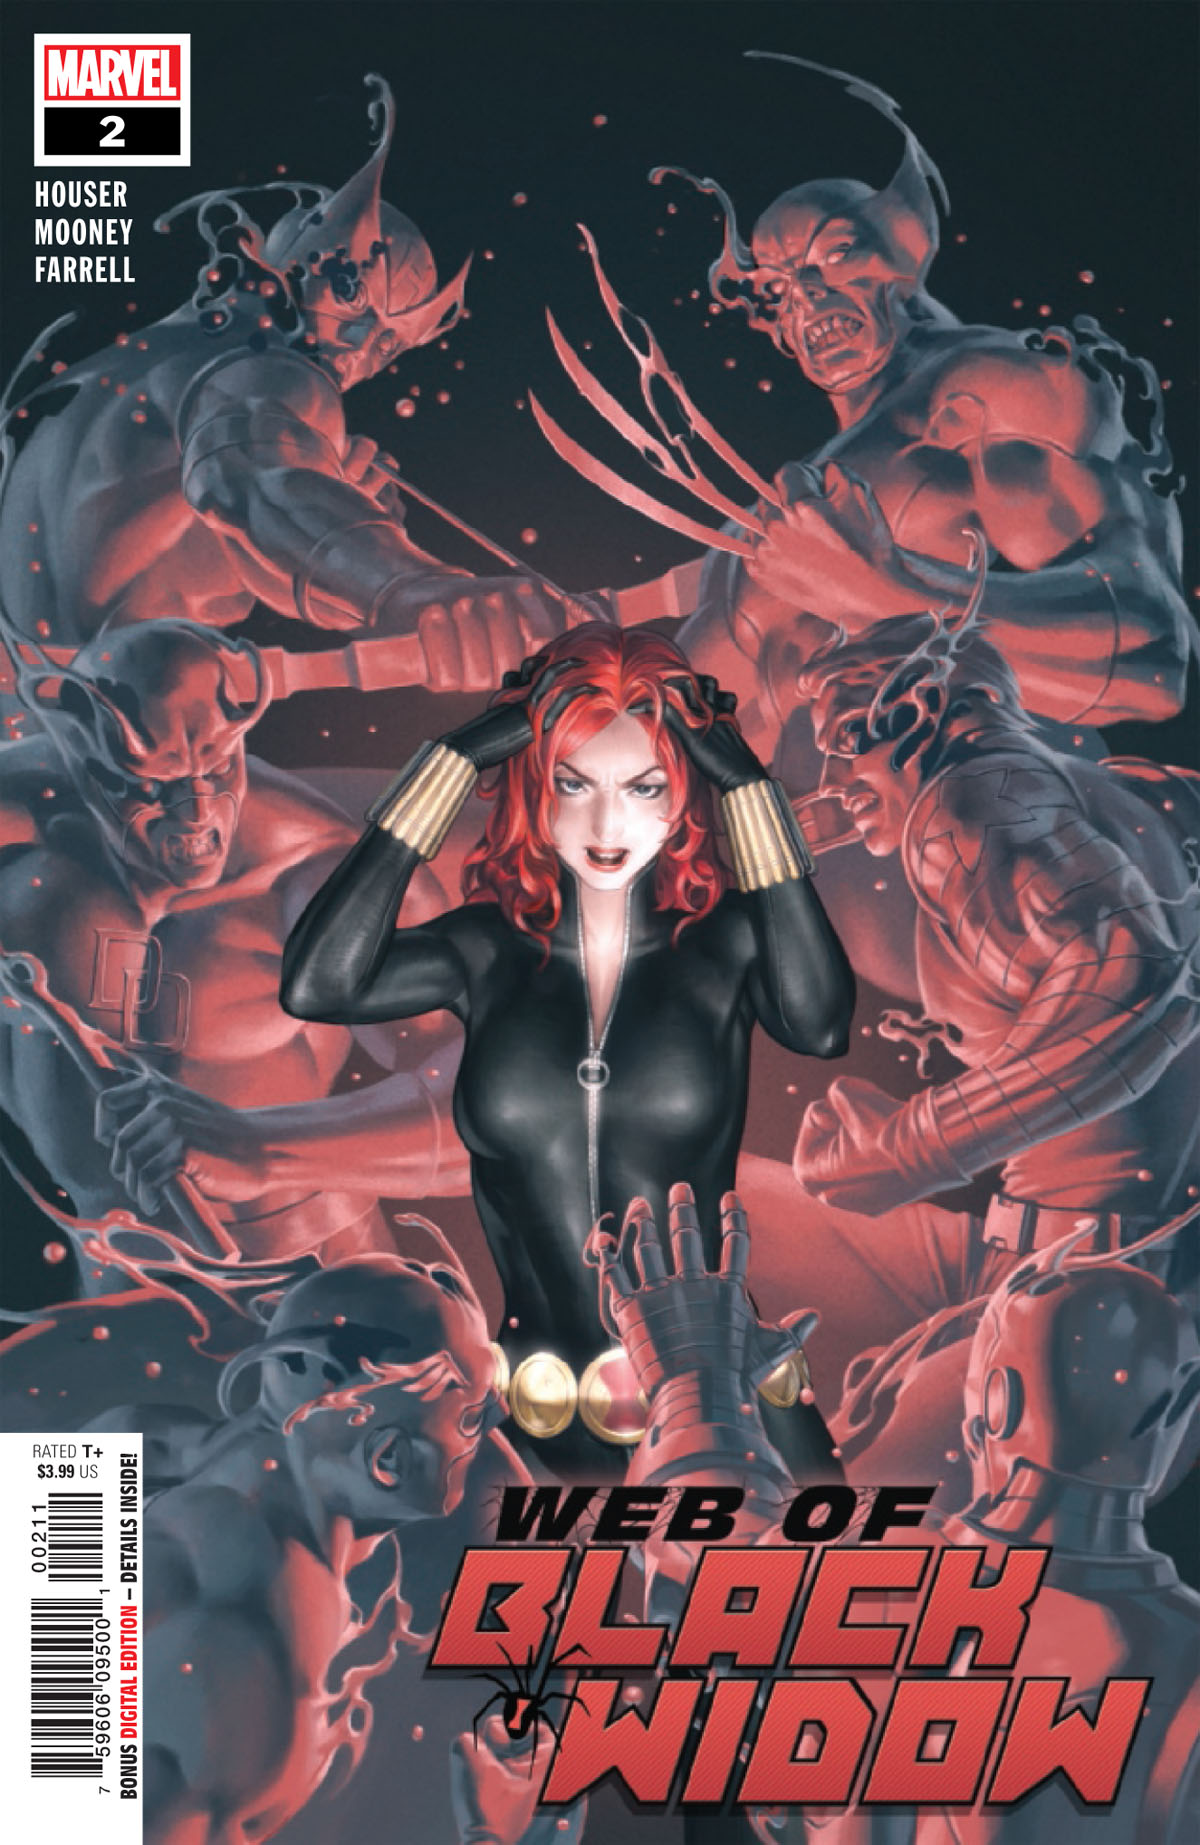 Web of Black Widow #2 cover